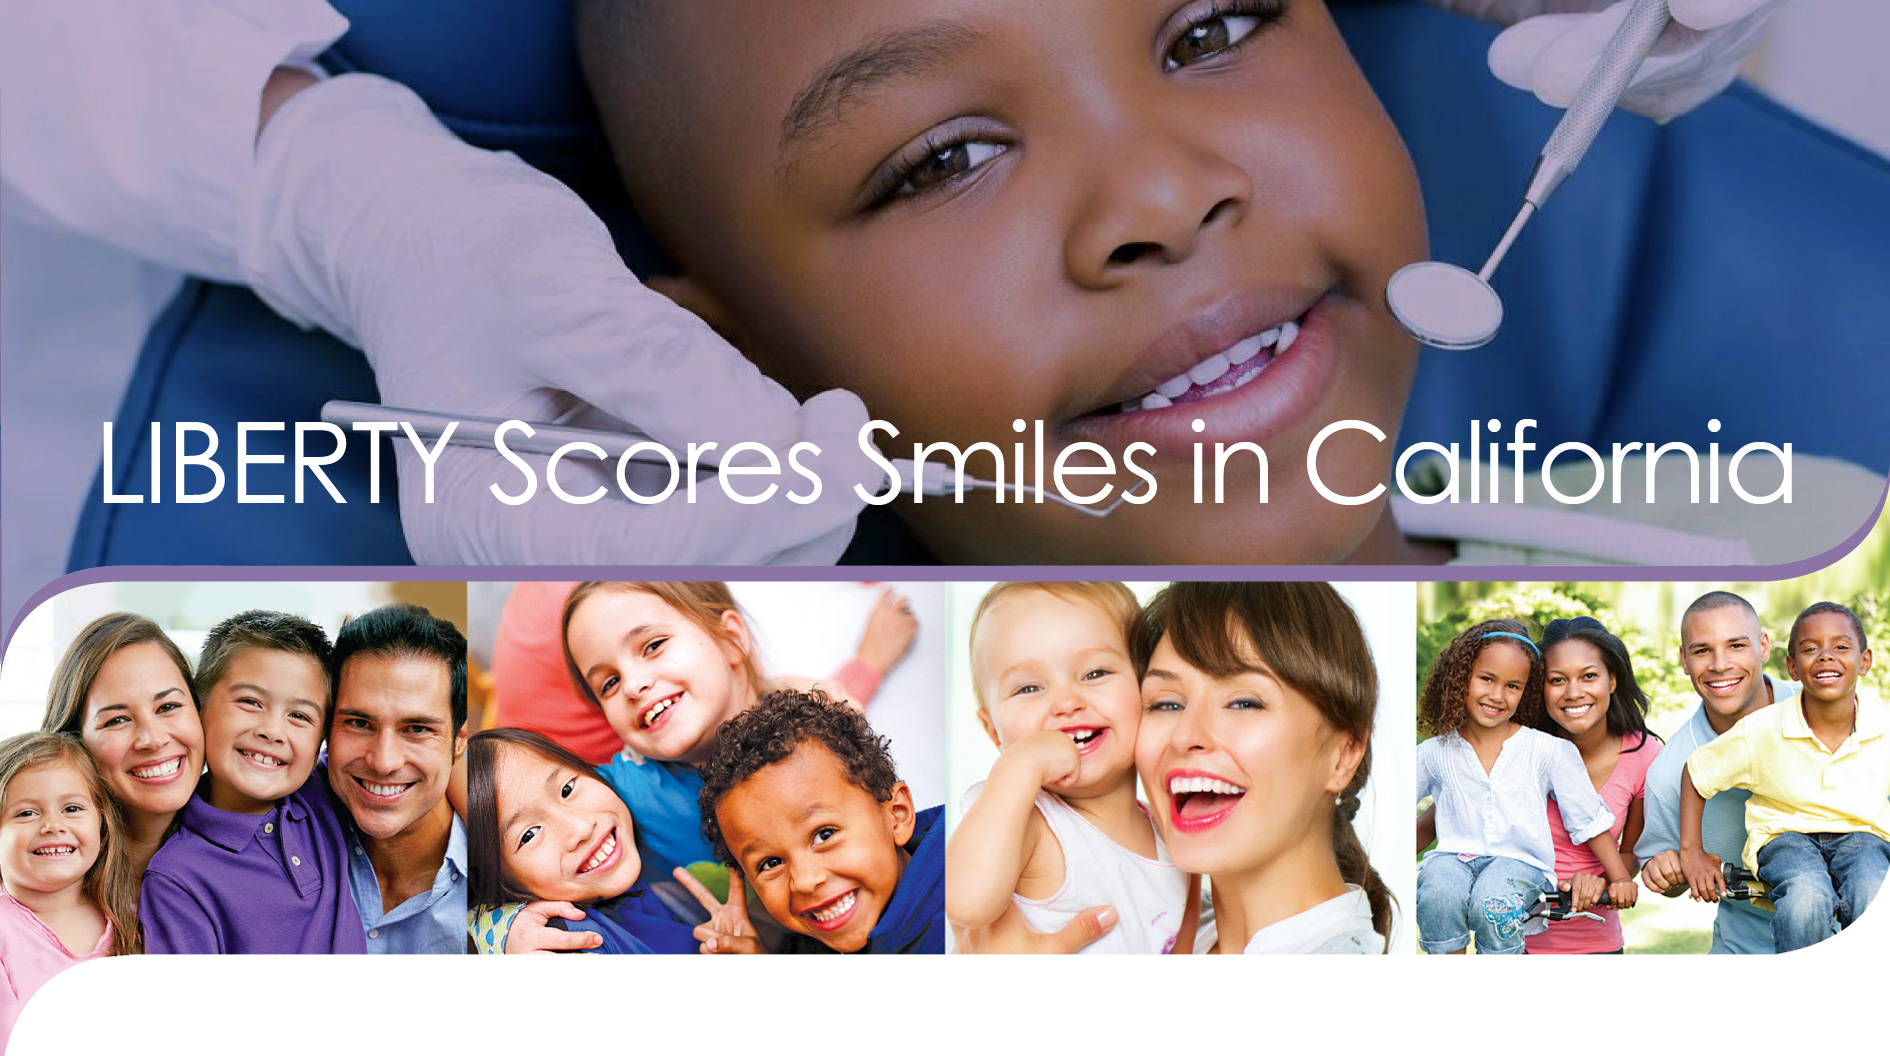 LIBERTY Scores smiles in CA